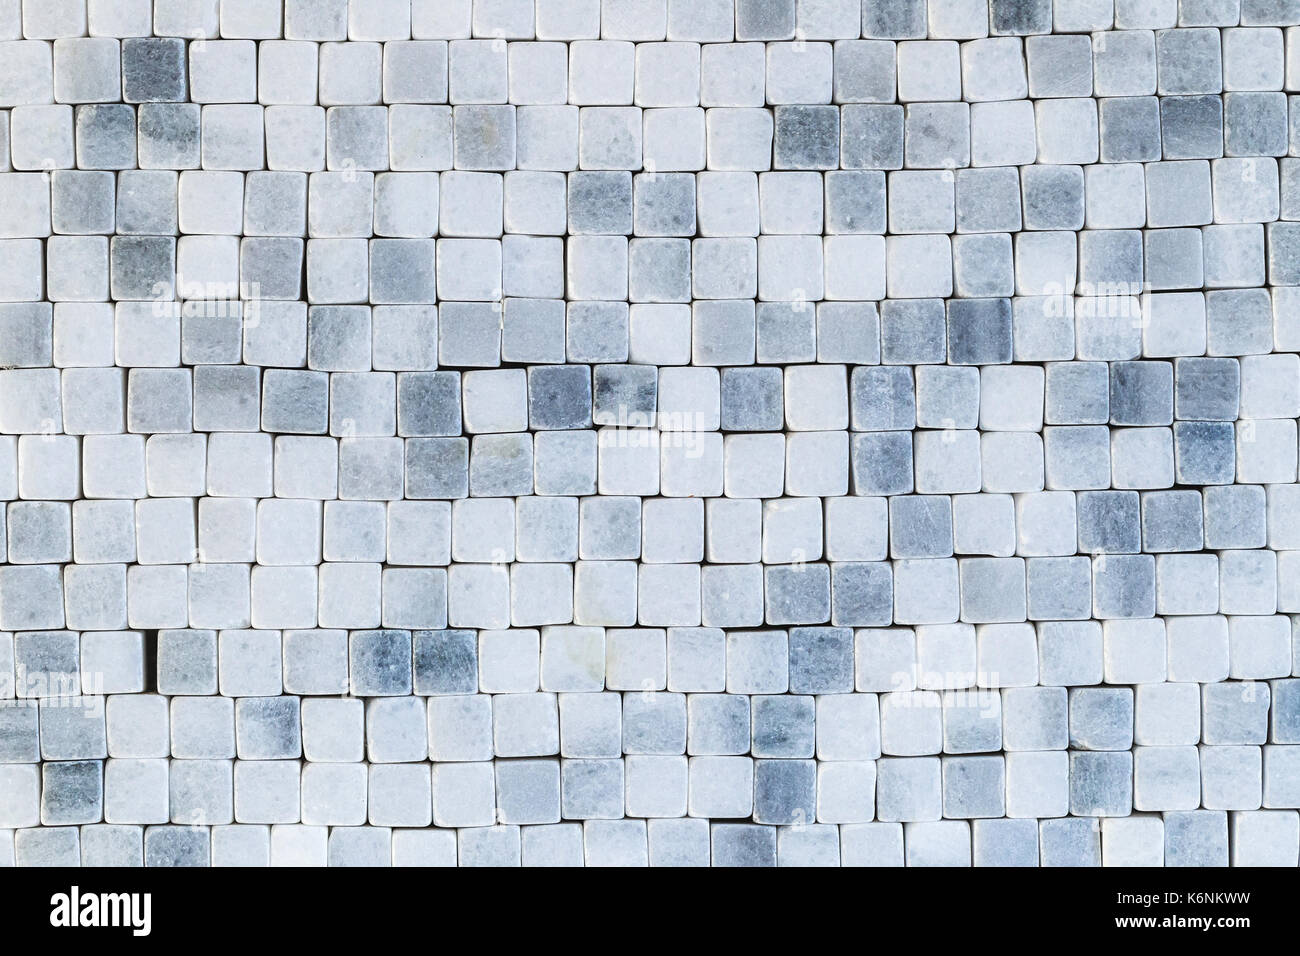 Blue abstract mosaic, wall, floor tile Stock Photo: 159057861 - Alamy